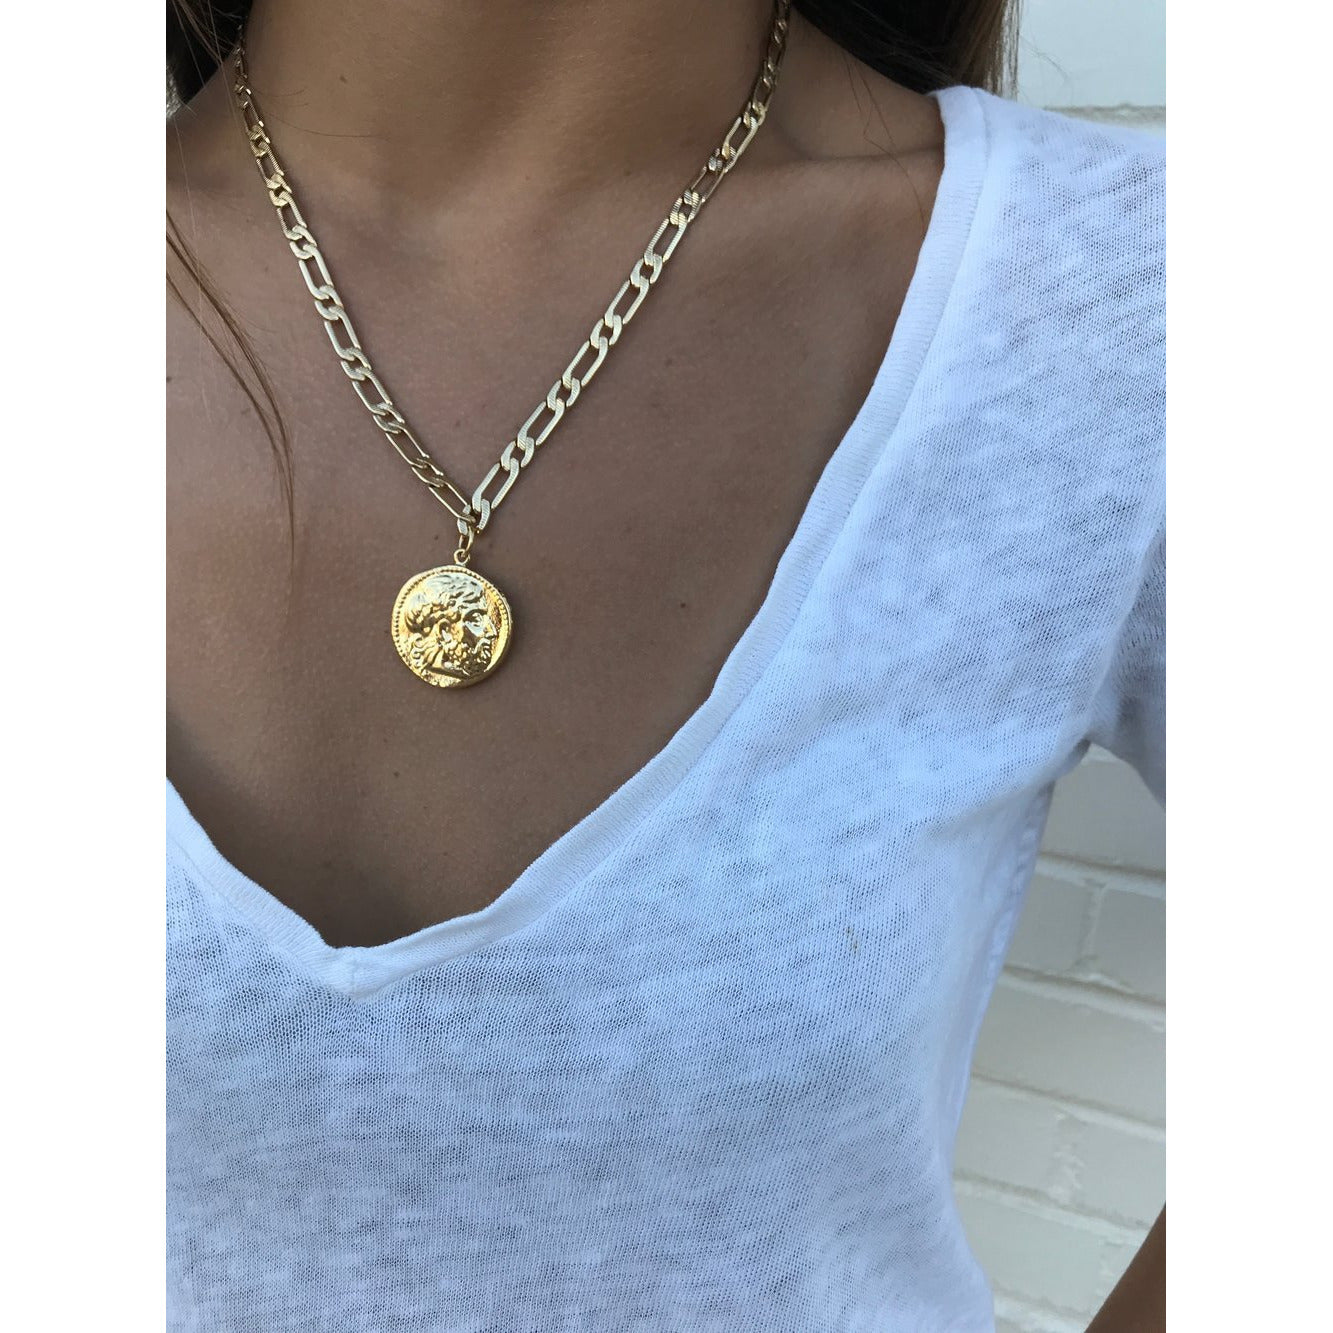 Best Selling Gold Jersey + Coin Necklace